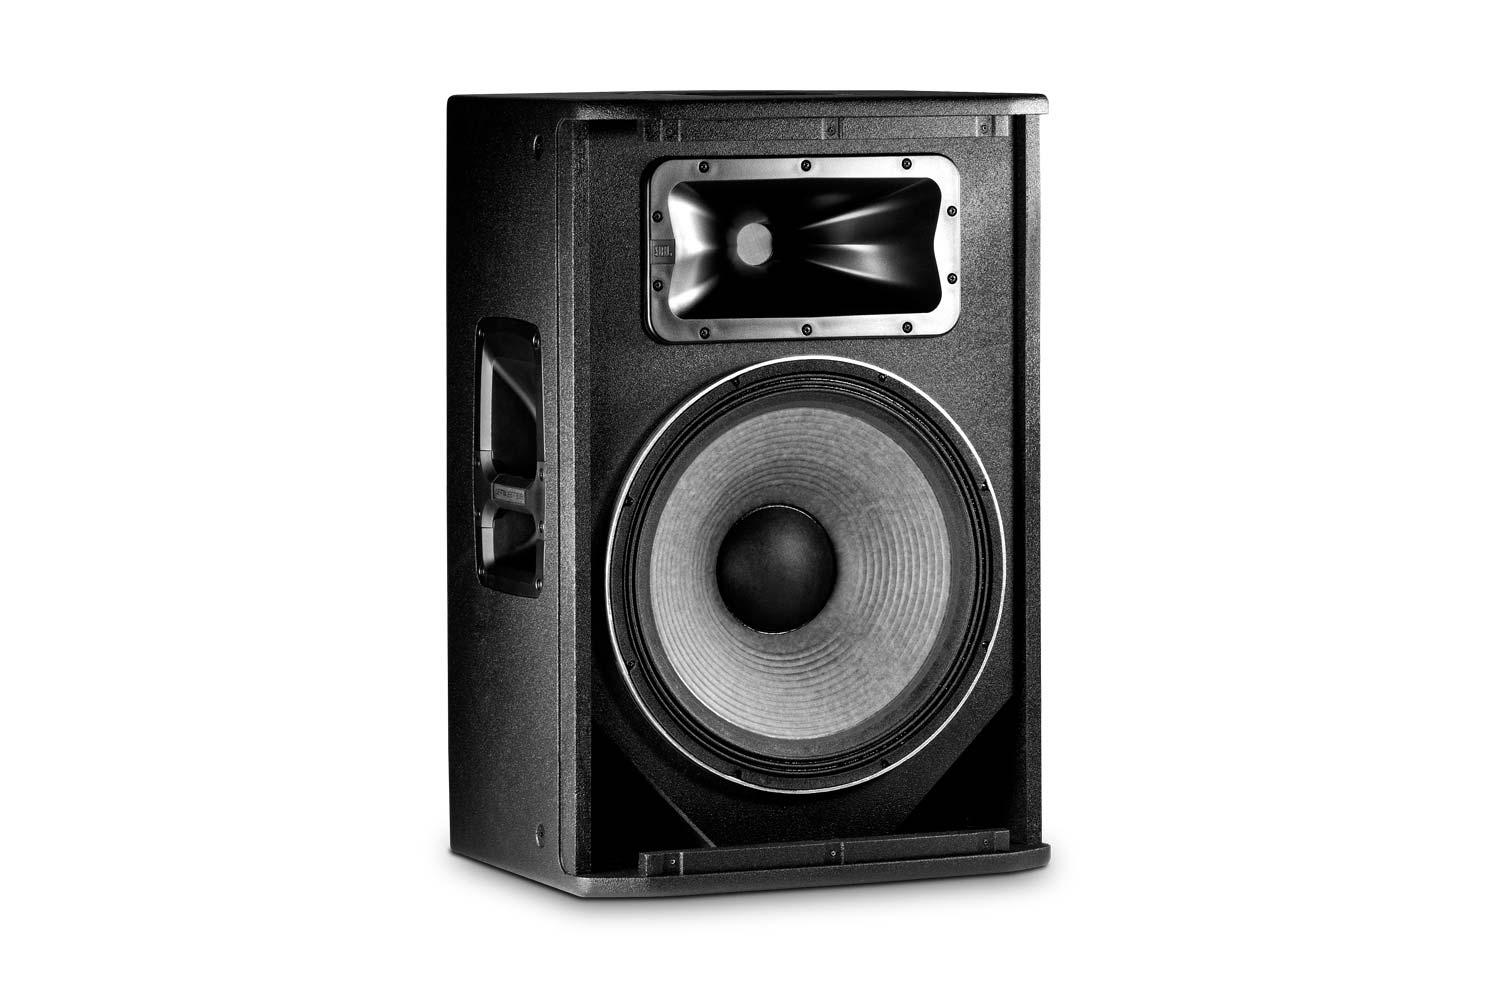 jbl srx815p 15 2 way powered active loudspeaker agiprodj. Black Bedroom Furniture Sets. Home Design Ideas